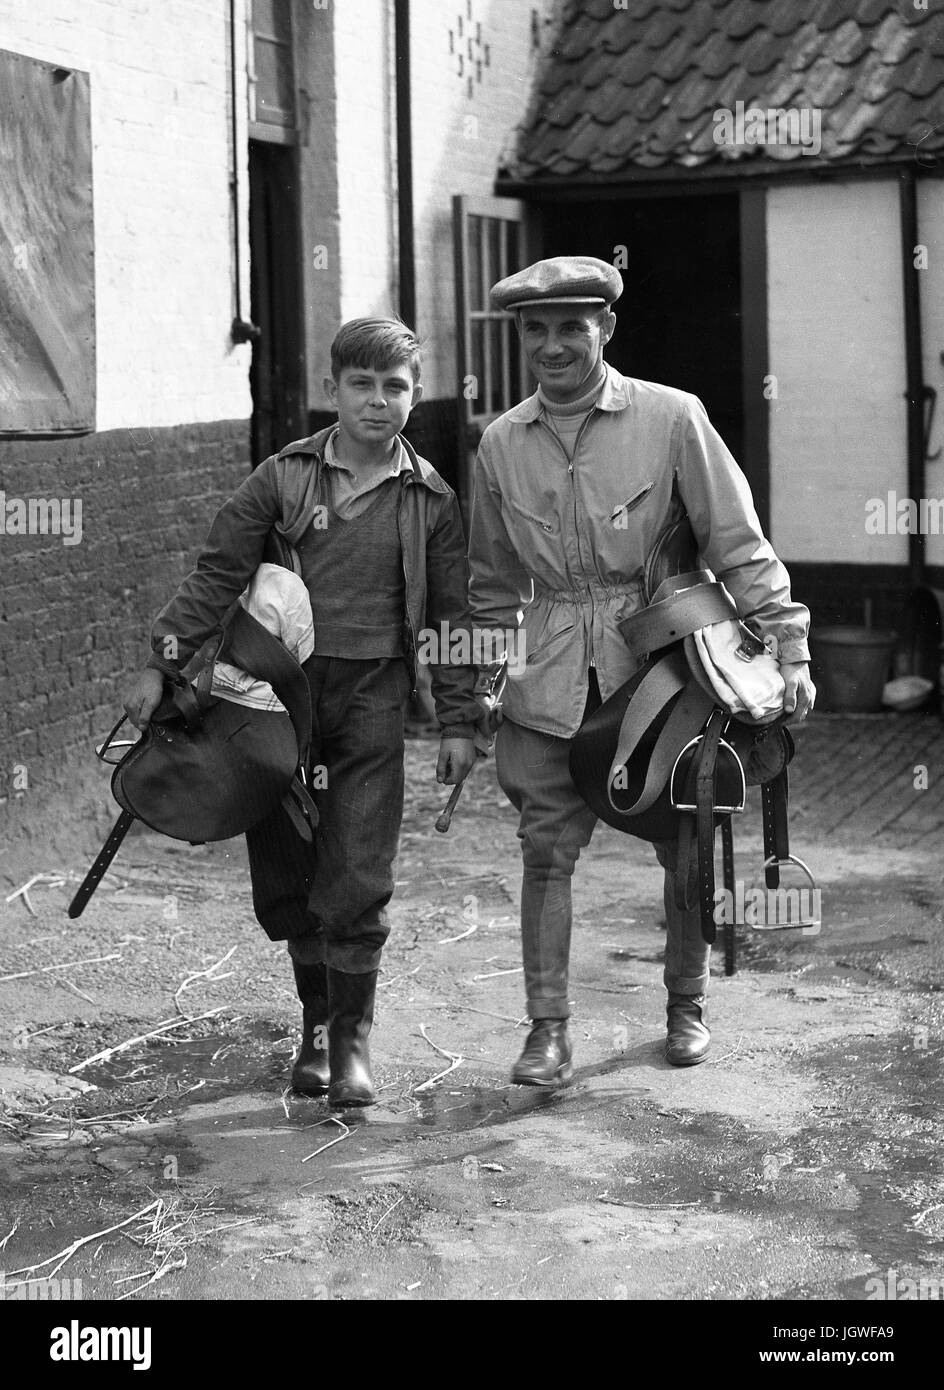 Jockey and stable lad at racing stables Britain 1950s - Stock Image